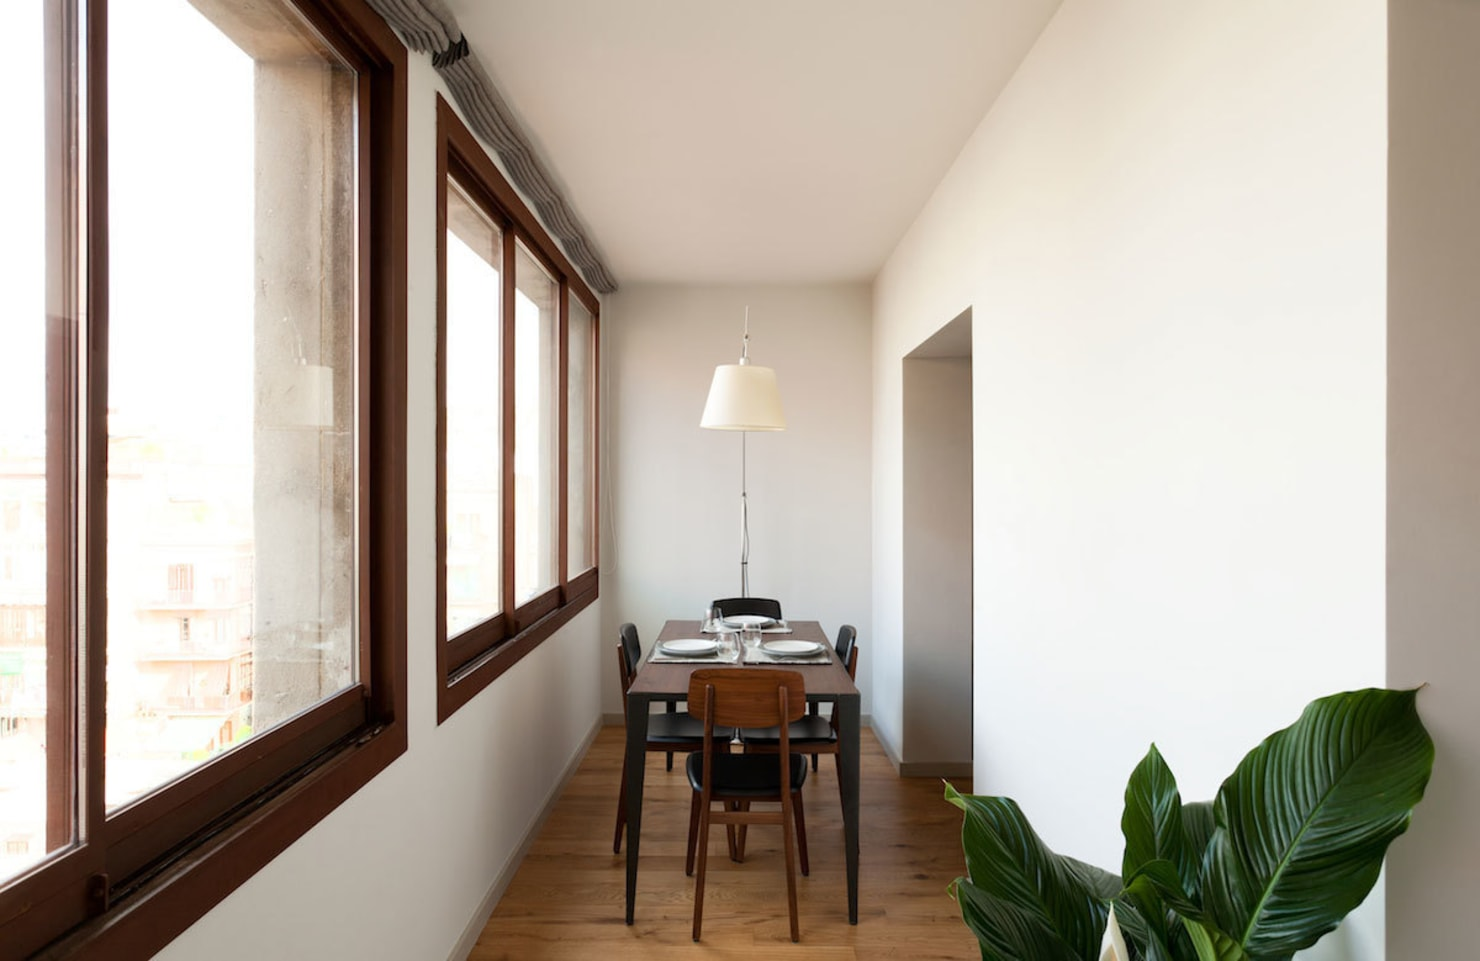 8 smart ideas to utilise narrow spaces in your home